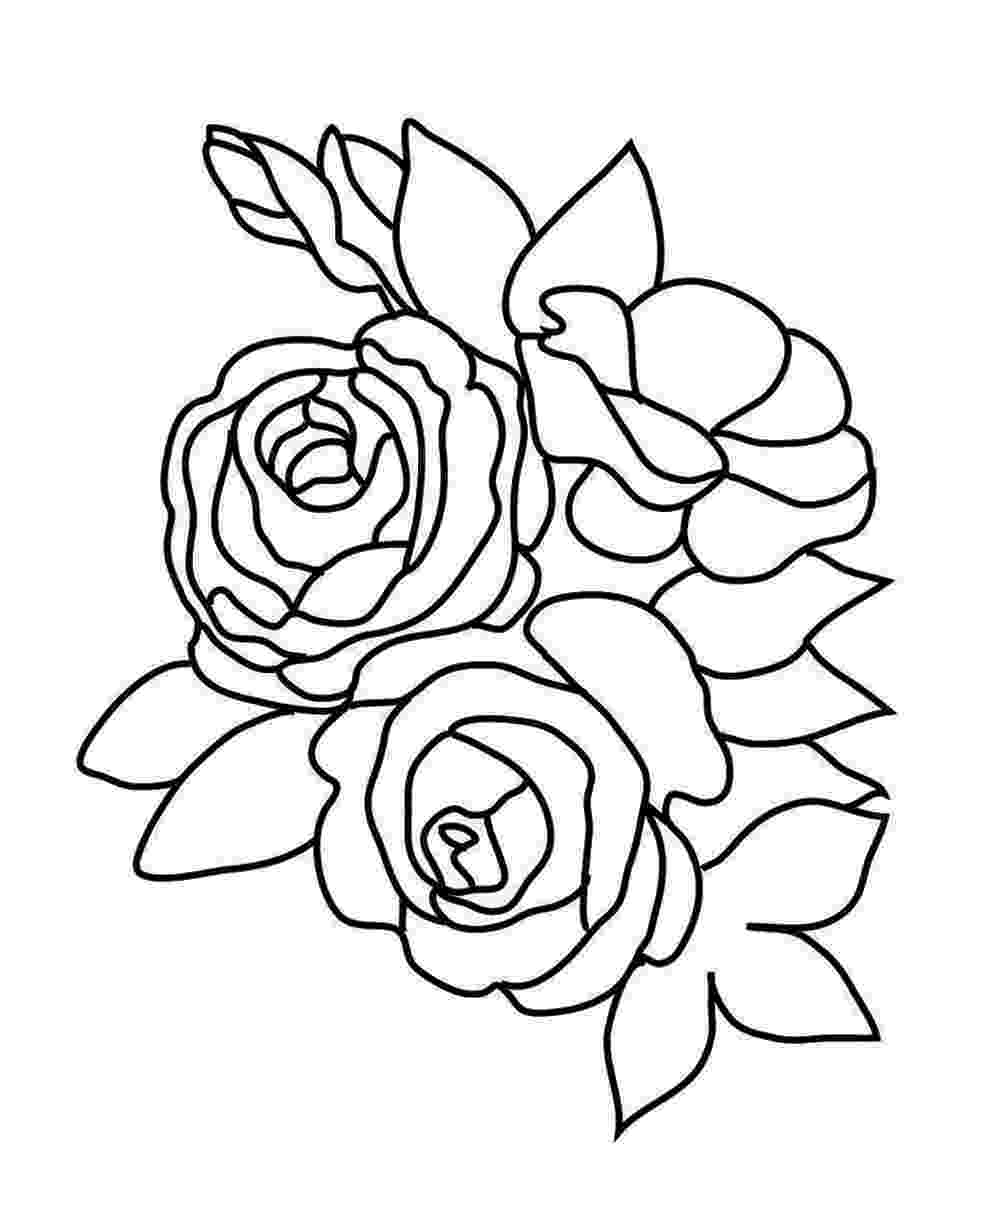 rose coloring pages top 10 rose coloring pages that are beyond beautiful pages rose coloring